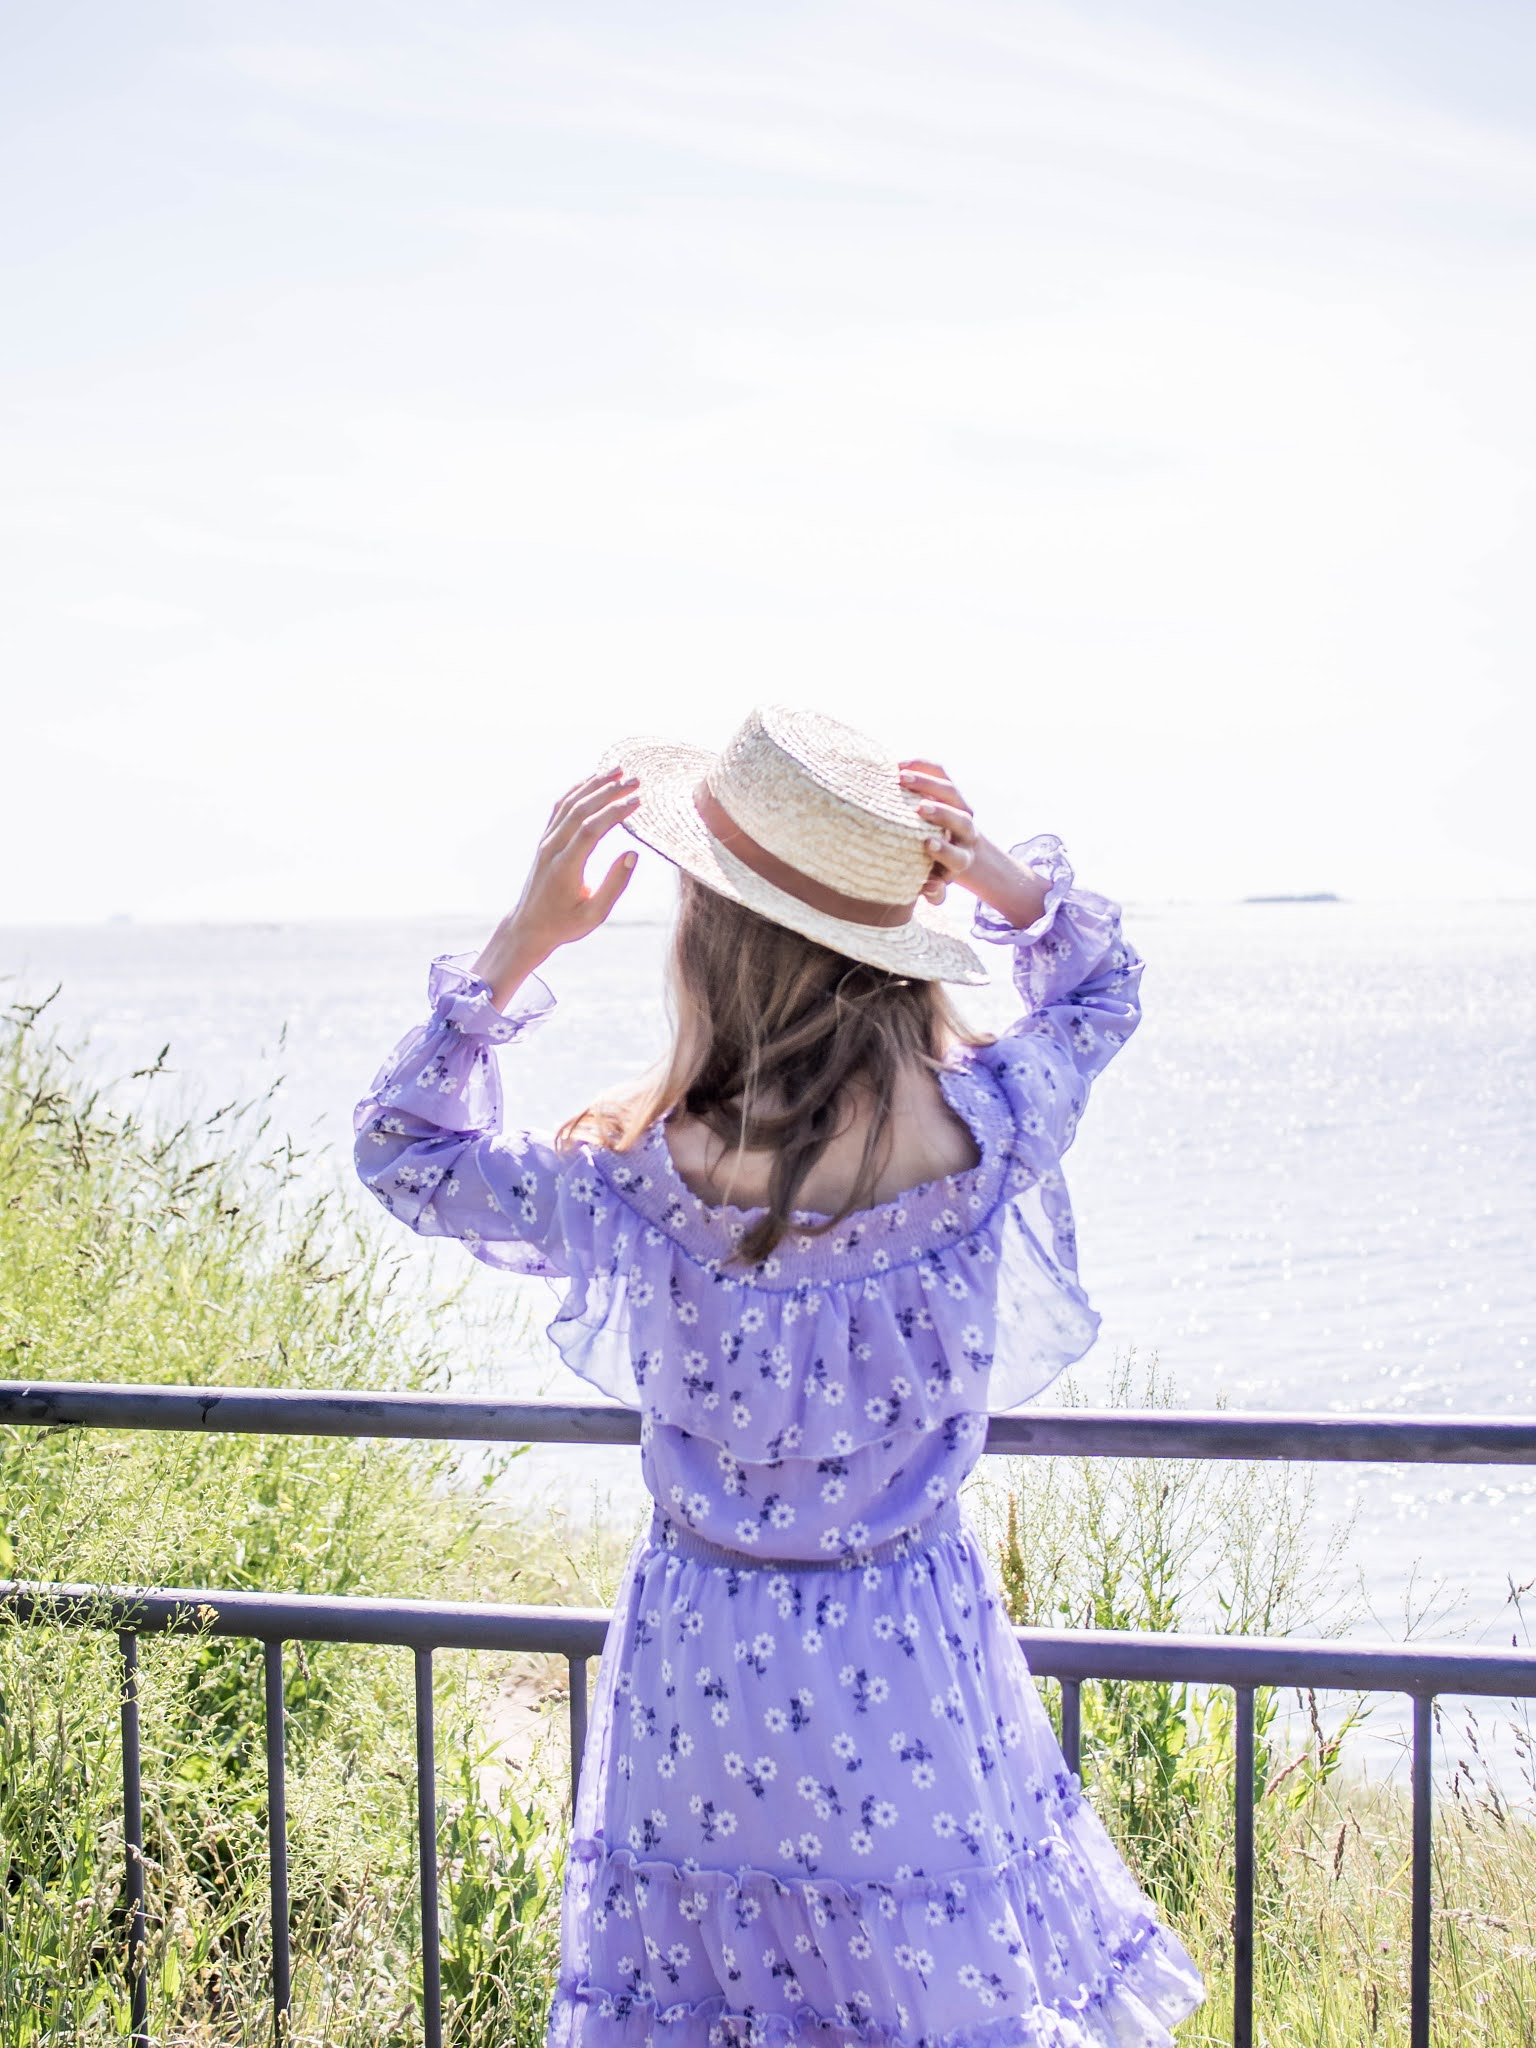 Summer outfit with lilac floral dress and straw hat - Kesäasu, vaaleanvioletti kukkamekko, olkihattu